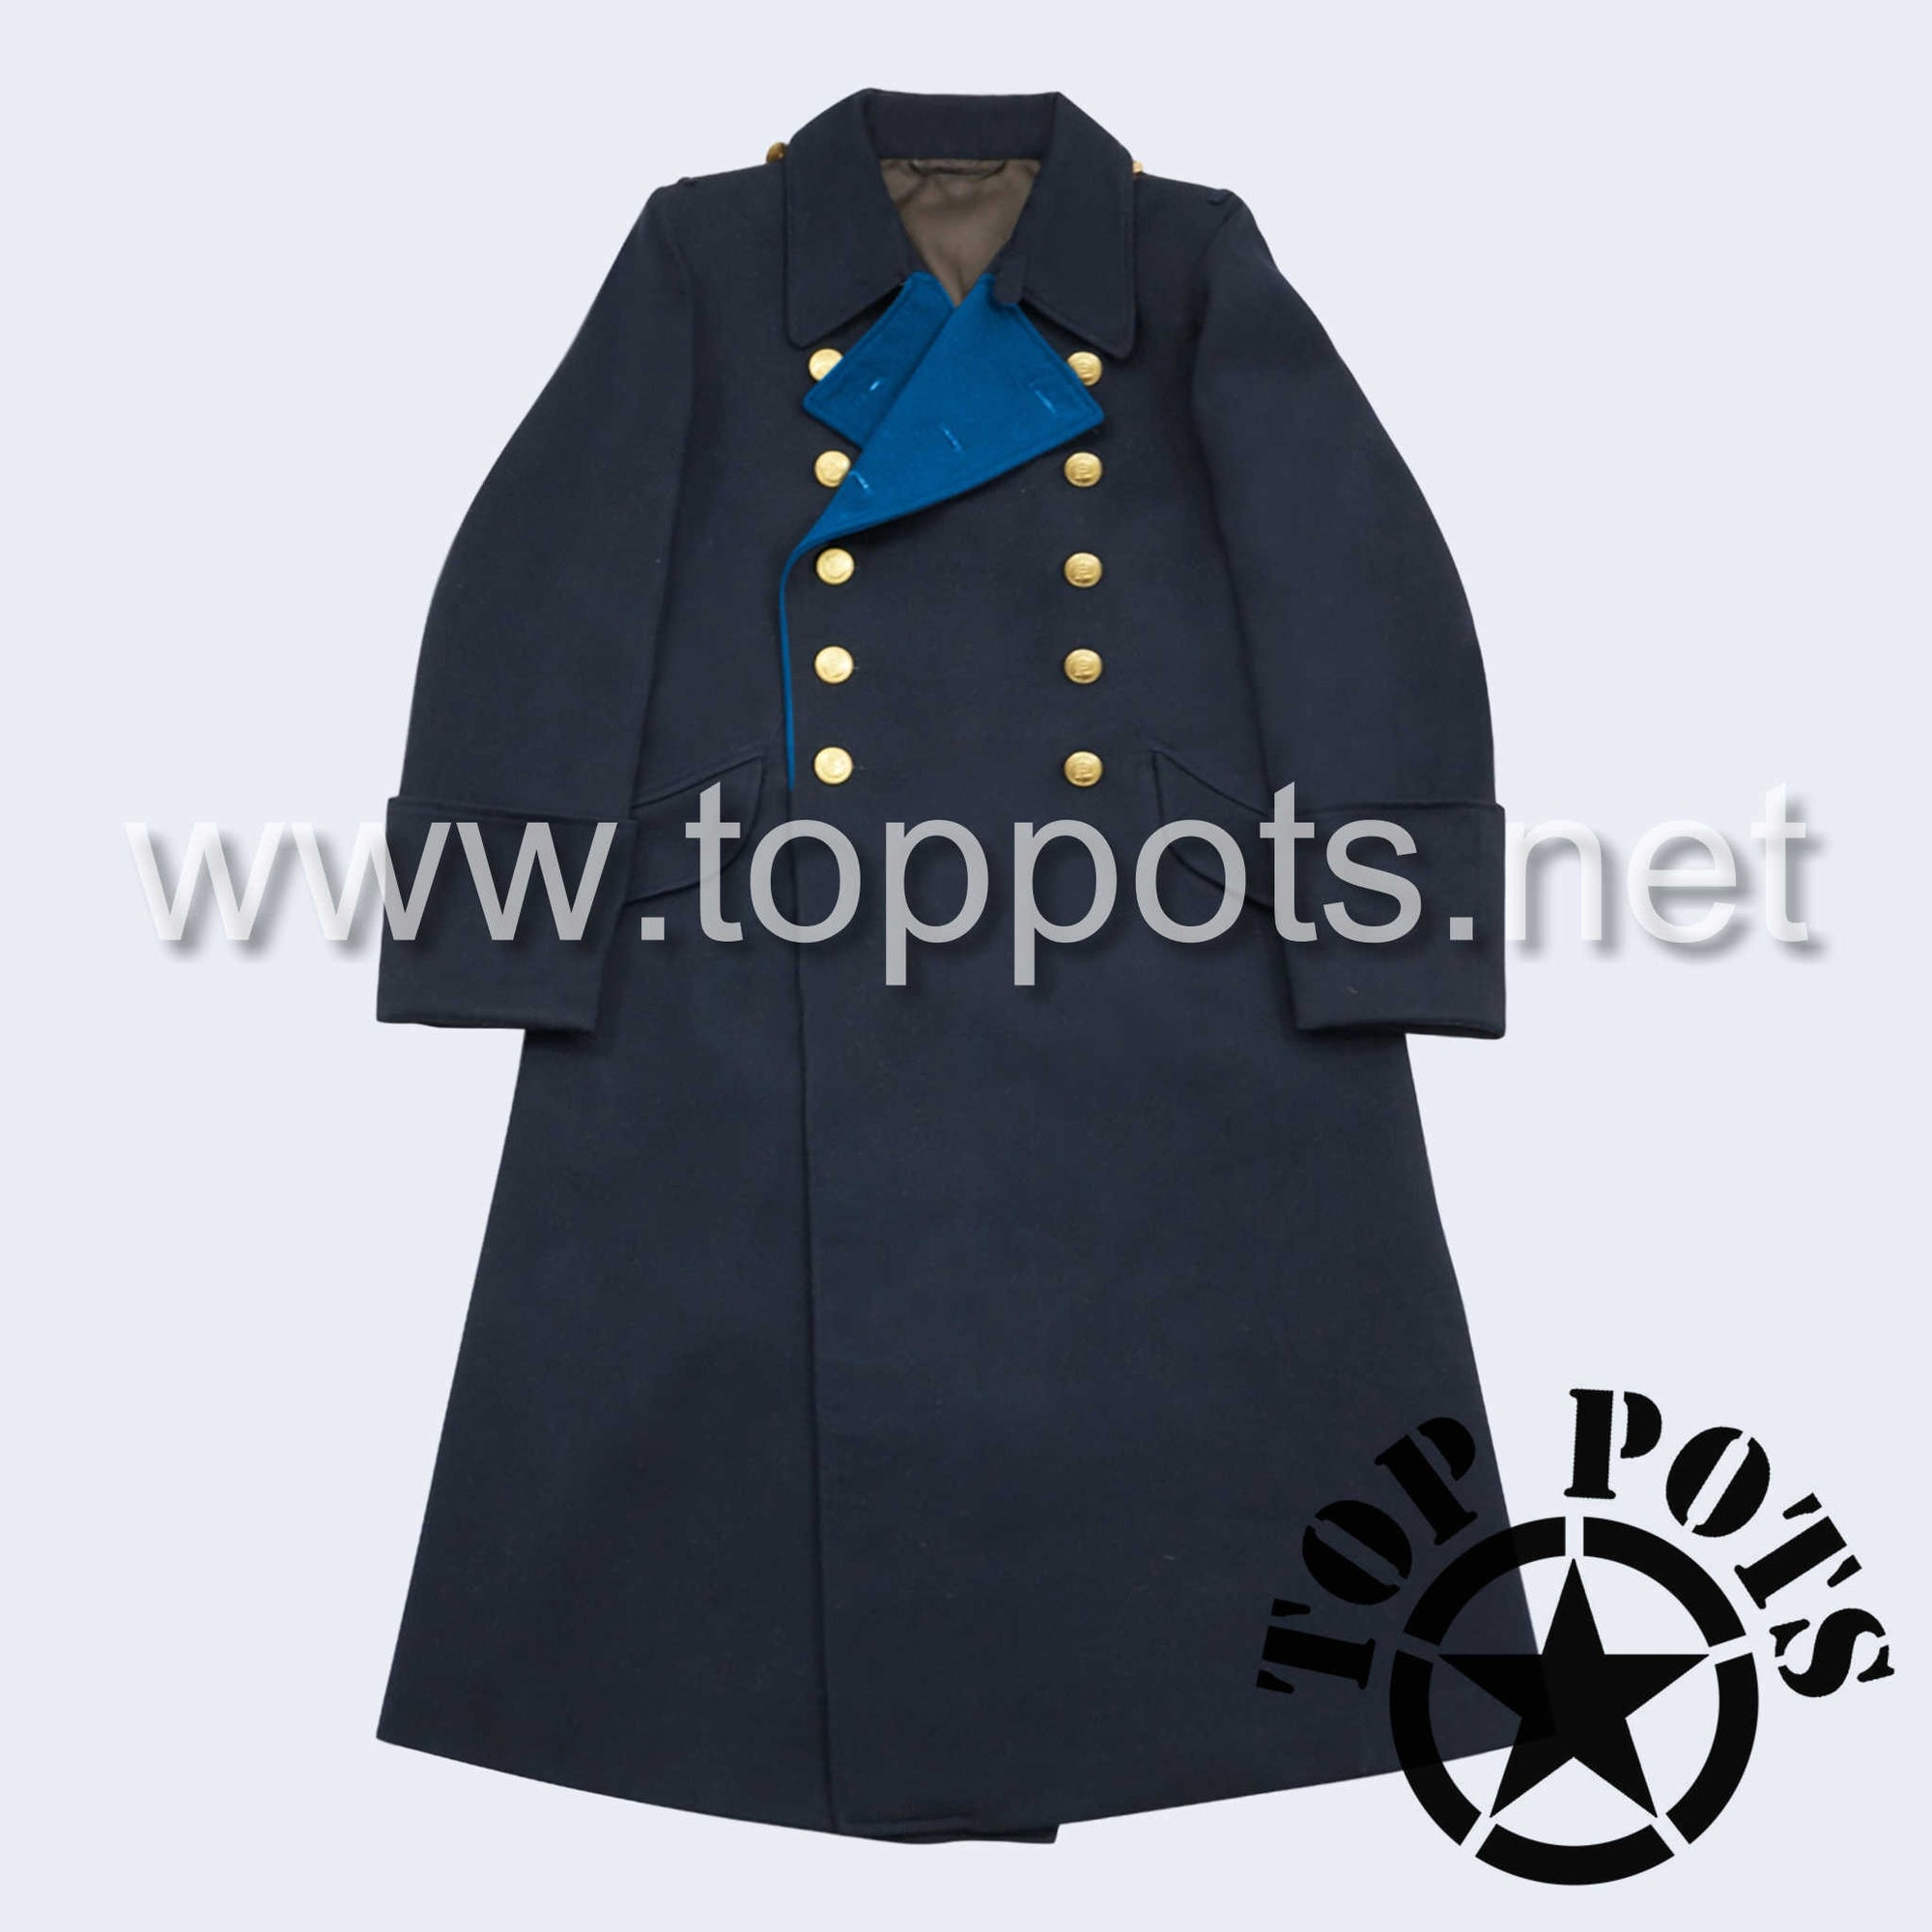 WWII German Navy Kriegsmarine Officer Uniform Overcoat Greatcoat Winter Jacket Navy Blue Gabardine - Admiral